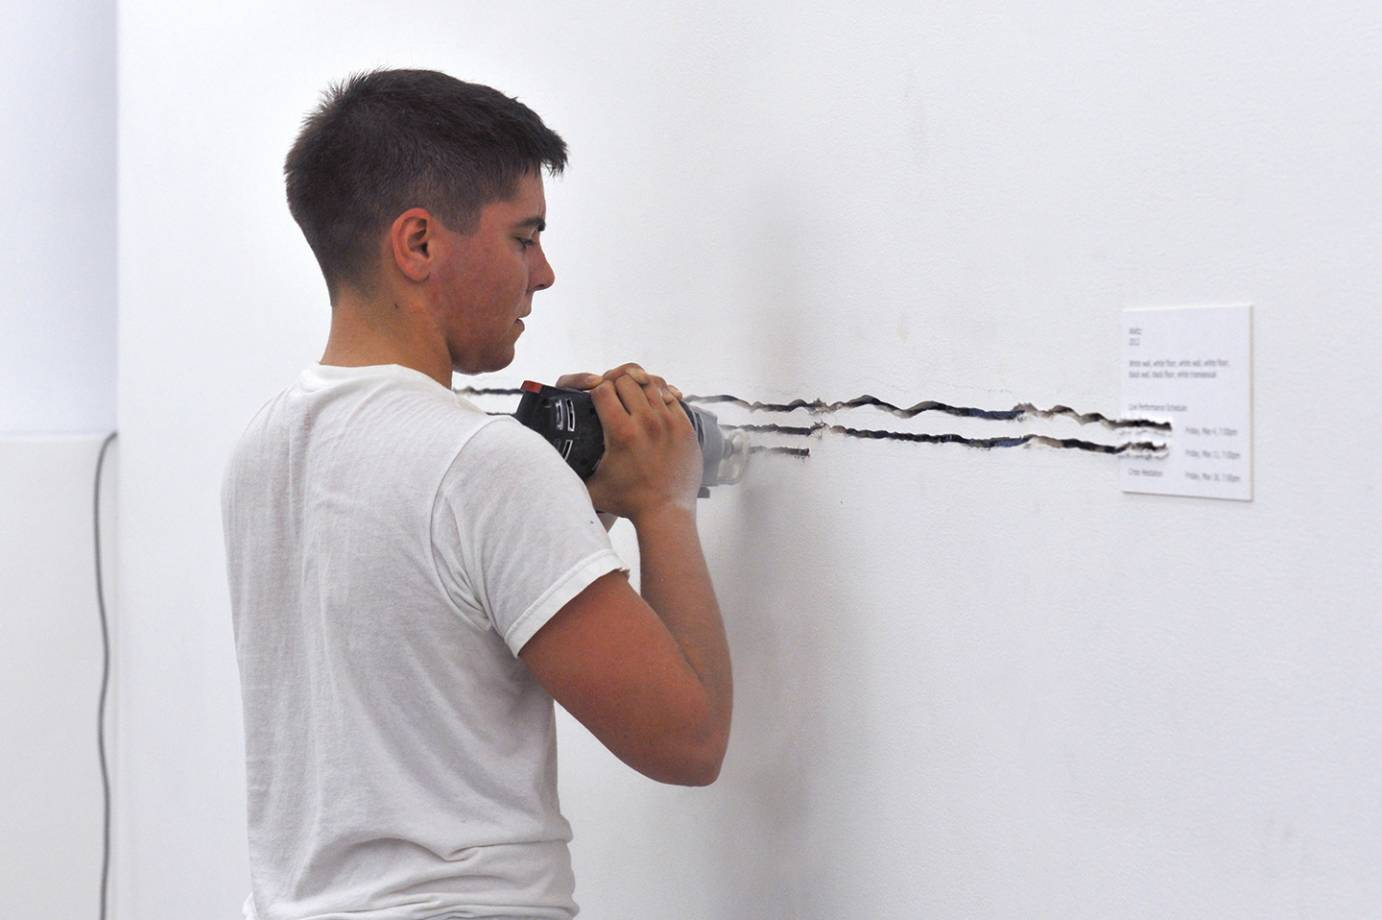 Yve Laris Cohen, dressed in a white t-shirt, creating deep lines in a white wall using a power tool.